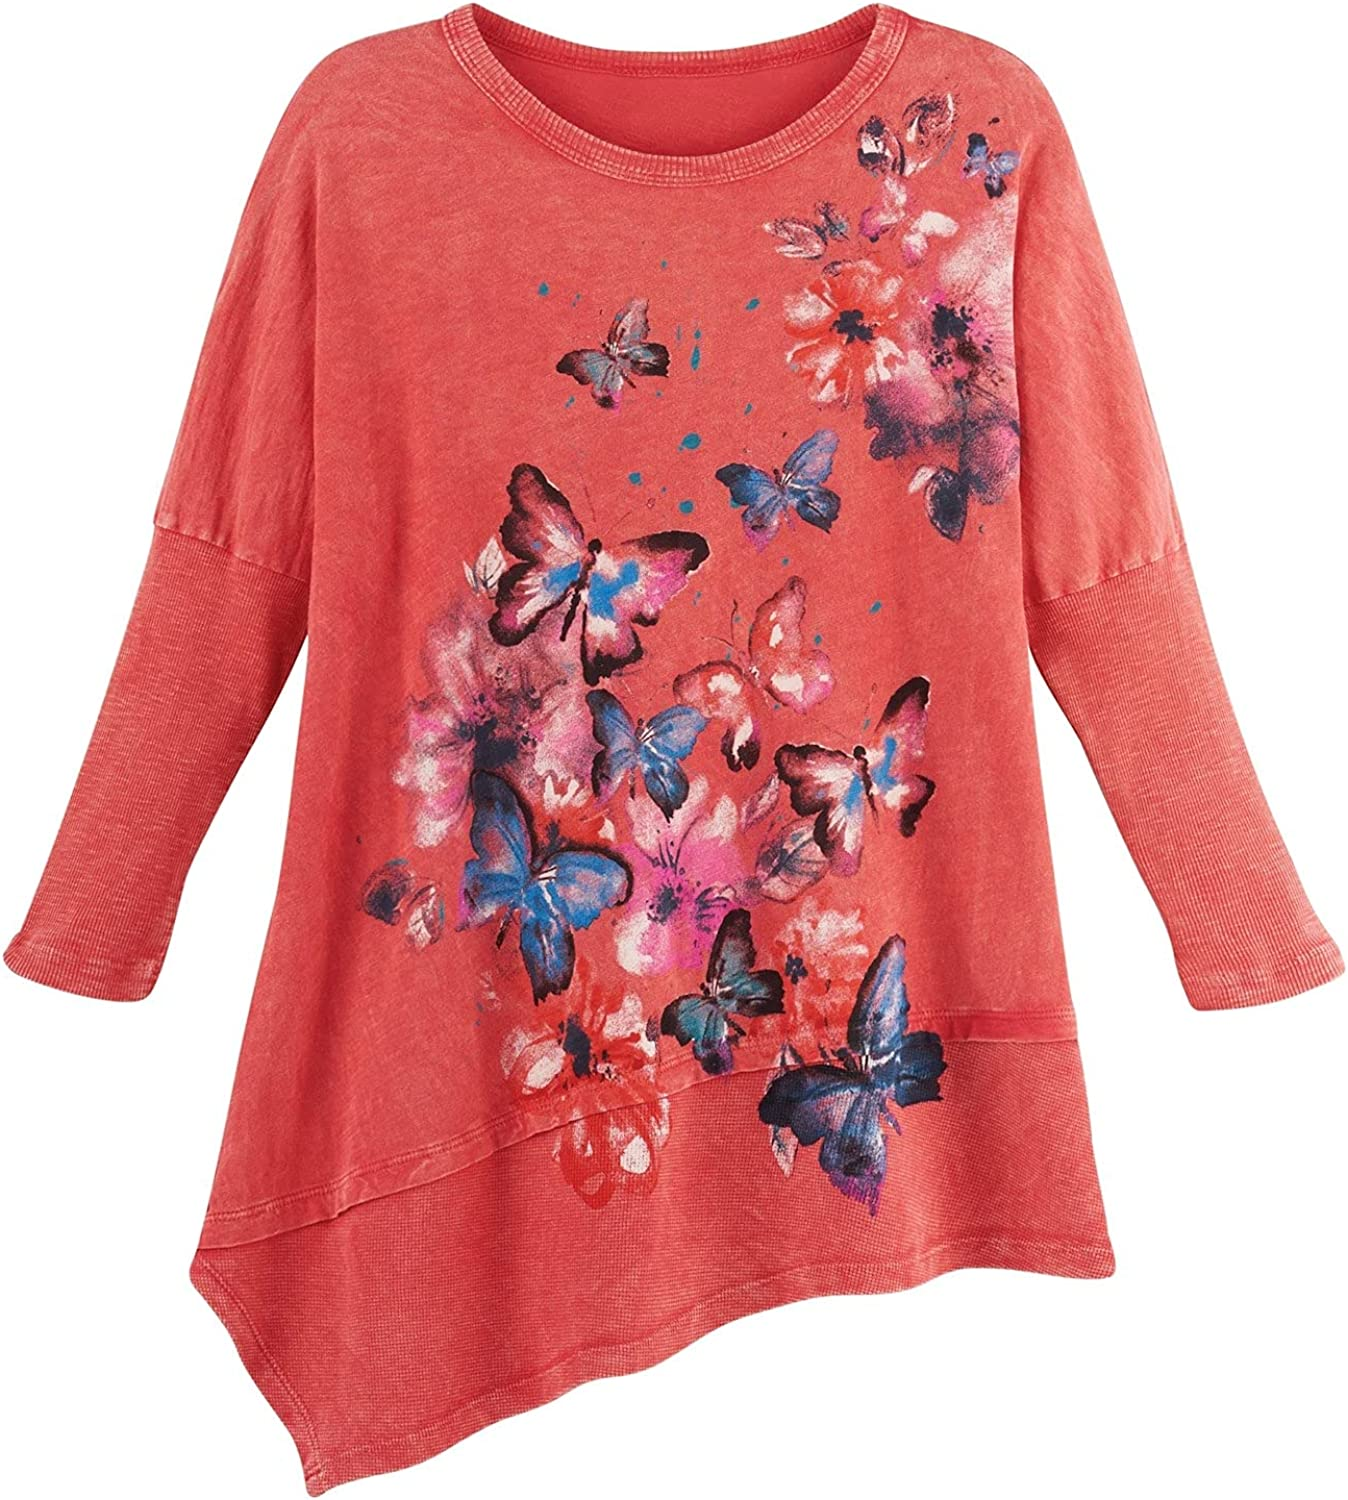 Jess & Jane Women's Butterfly Tunic - Asymmetrical Coral Floral Top, 3/4 Sleeve